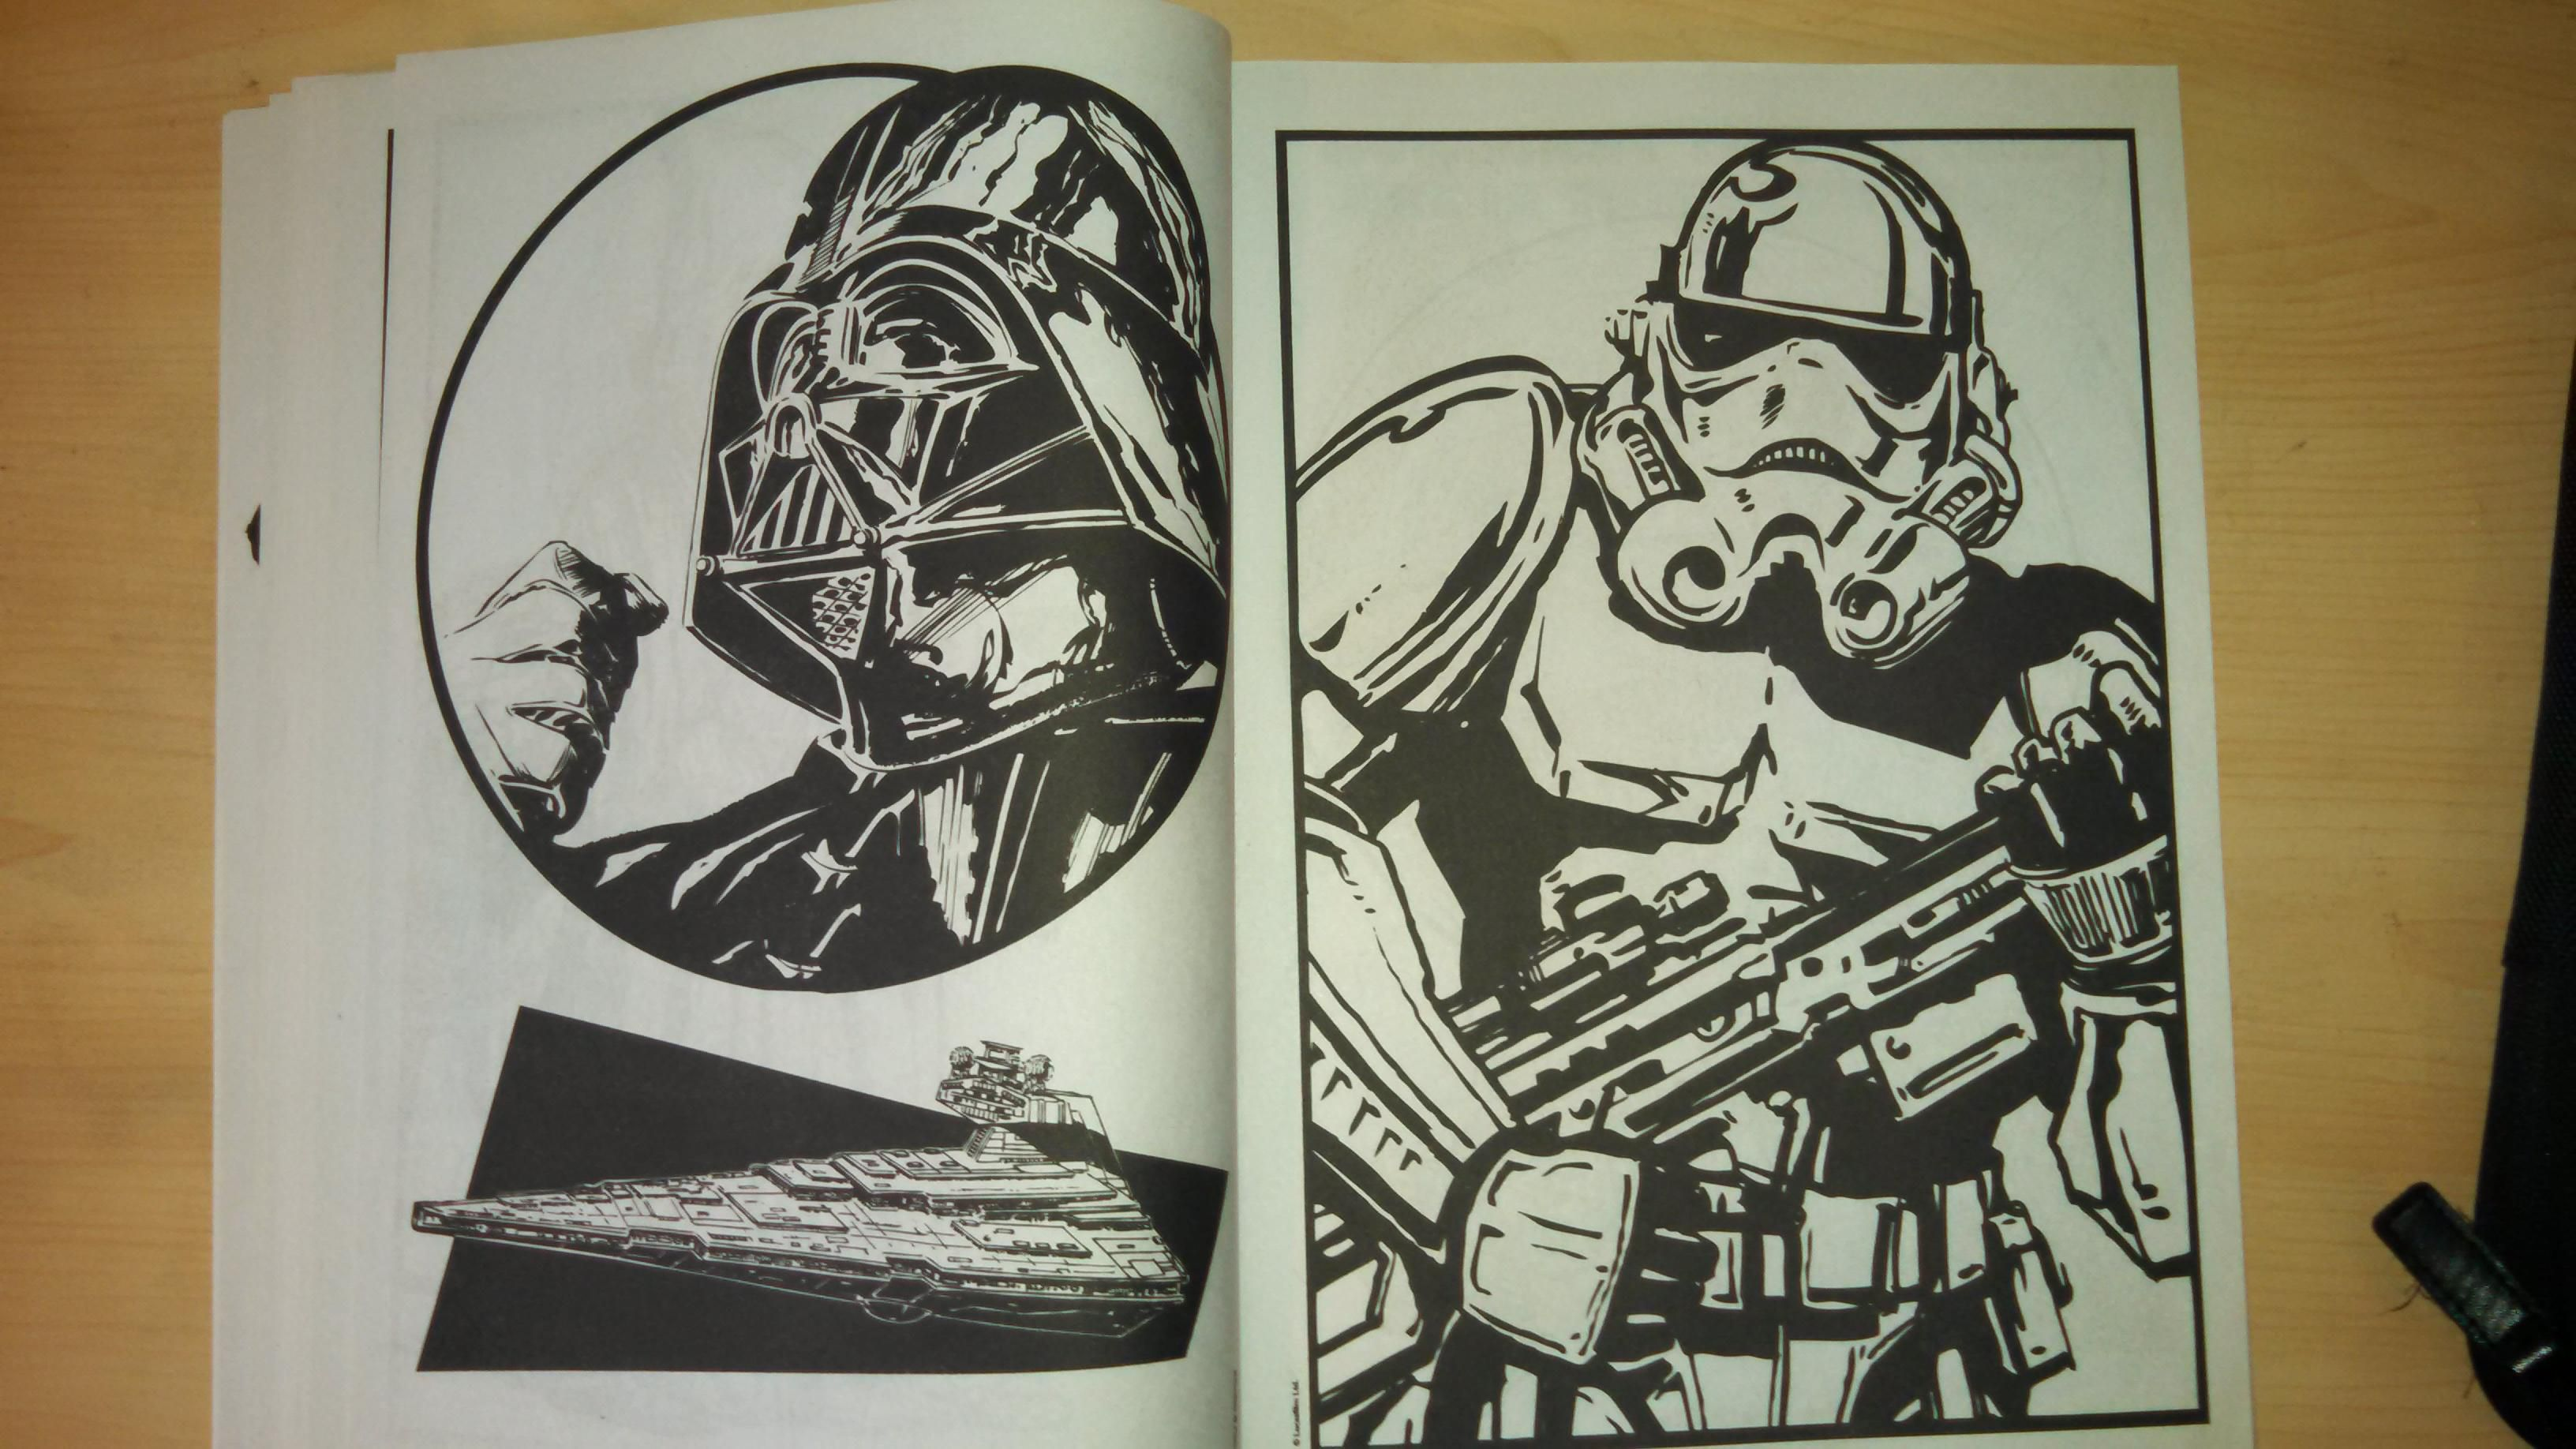 Worst coloring book ever (With images) Star wars love